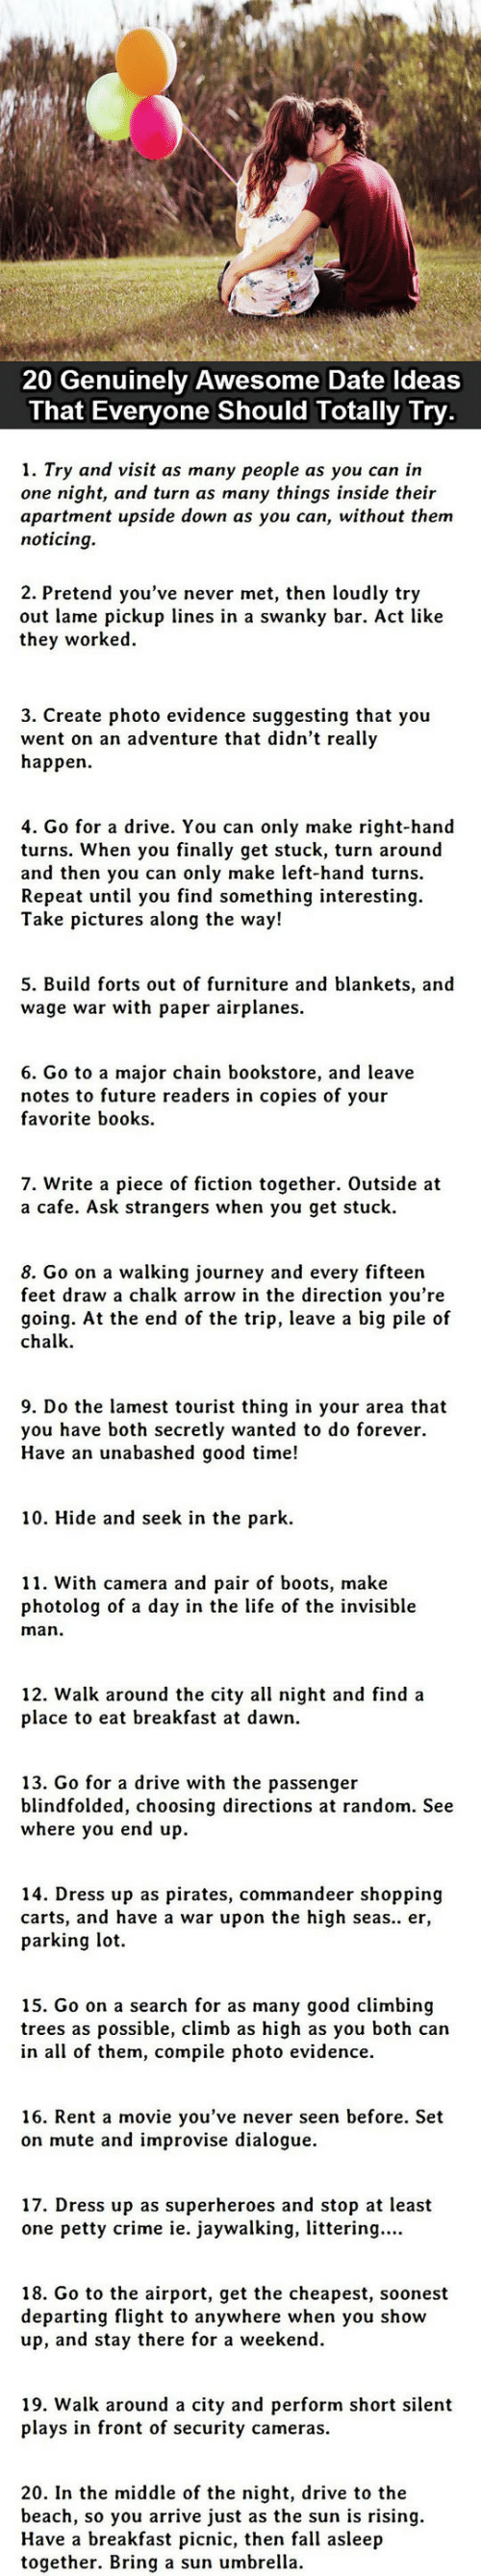 Books, Climbing, and Crime: 20 Genuinely Awesome Date Ideas  That Everyone Should Totally Try.  1. Try and visit as many people as you can in  one night, and turn as many things inside their  apartment upside down as you can, without them  noticing.  2. Pretend you've never met, then loudly try  out lame pickup lines in a swanky bar. Act like  they worked  3. Create photo evidence suggesting that you  went on an adventure that didn't really  happen  4. Go for a drive. You can only make right-hand  turns. When you finally get stuck, turn around  and then you can only make left-hand turns.  Repeat until you find something interesting  Take pictures along the way!  5. Build forts out of furniture and blankets, and  wage war with paper airplanes  6. Go to a major chain bookstore, and leave  notes to future readers in copies of your  favorite books  7. Write a piece of fiction together. Outside at  a cafe. Ask strangers when you get stuck  8. Go on a walking journey and every fifteen  feet draw a chalk arrow in the direction you're  going. At the end of the trip, leave a big pile of  chalk  9. Do the lamest tourist thing in your area that  you have both secretly wanted to do forever  Have an unabashed good time!  10. Hide and seek in the park.  11. With camera and pair of boots, make  photolog of a day in the life of the invisible  man.  12. Walk around the city all night and find a  place to eat breakfast at dawn  13. Go for a drive with the passenger  blindfolded, choosing directions at random. See  where you end up.  14. Dress up as pirates, commandeer shopping  carts, and have a war upon the high seas.. er,  parking lot  15. Go on a search for as many good climbing  trees as possible, climb as high as you both can  in all of them, compile photo evidence  16. Rent a movie you've never seen before. Set  on mute and improvise dialogue  17. Dress up as superheroes and stop at least  one petty crime ie. jaywalking, littering..  18. Go to the airport, get the cheapest, soo